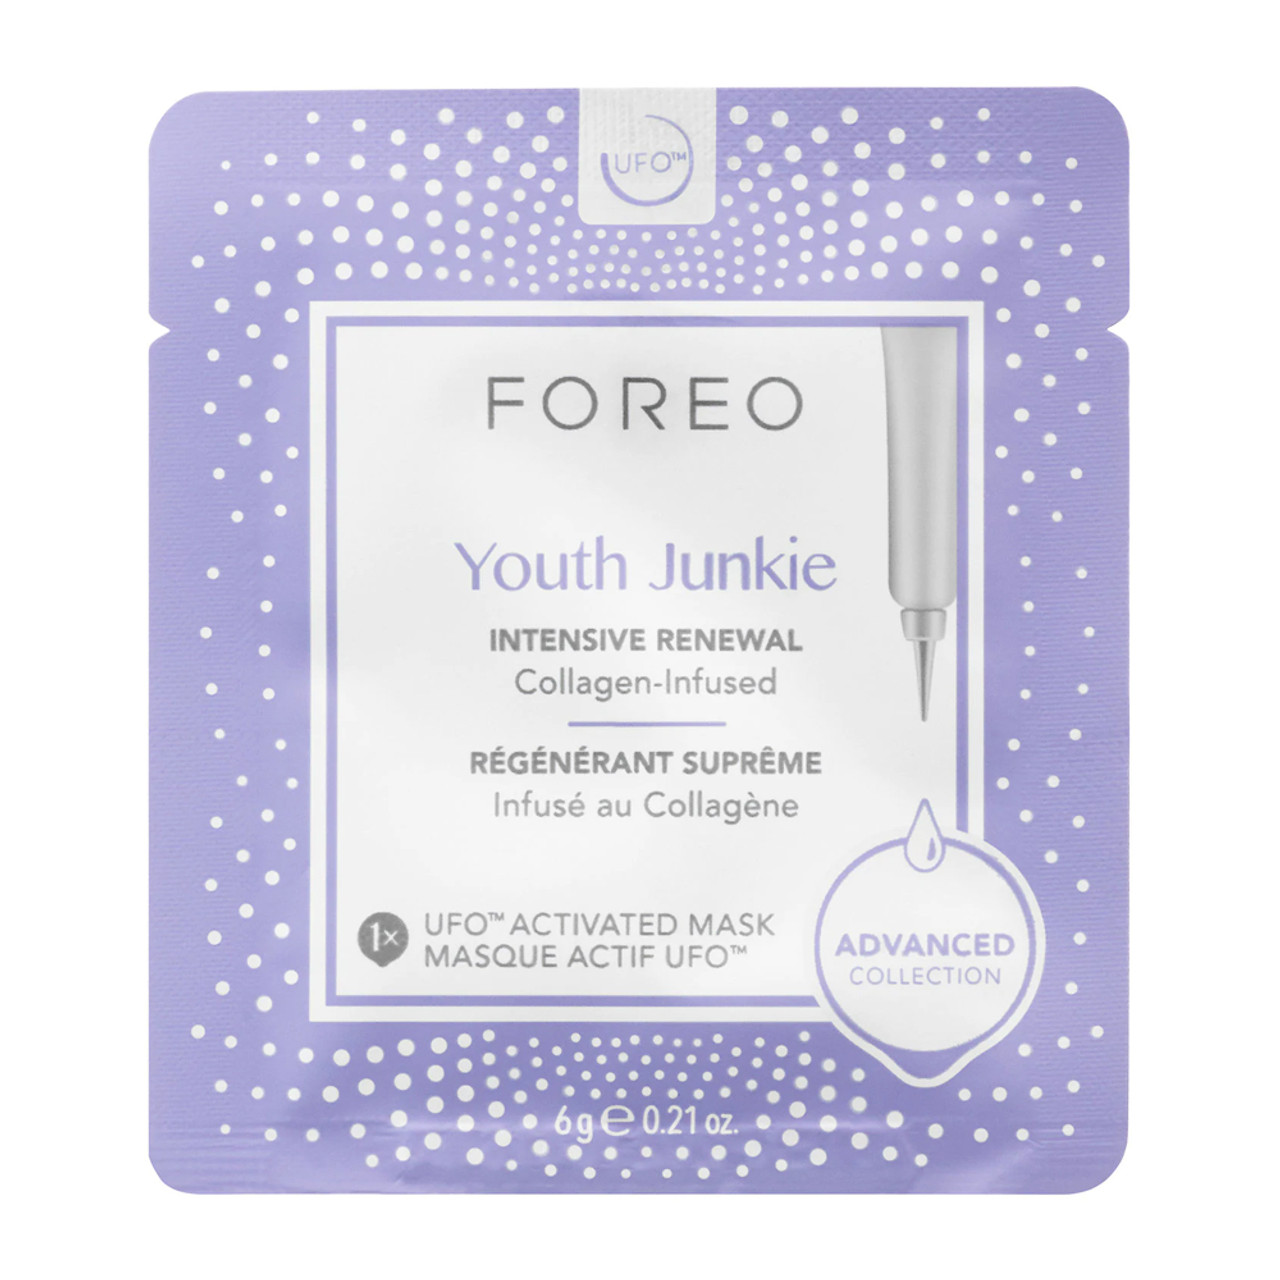 Foreo UFO Activated Masks - Youth Junkie (6-Pk)